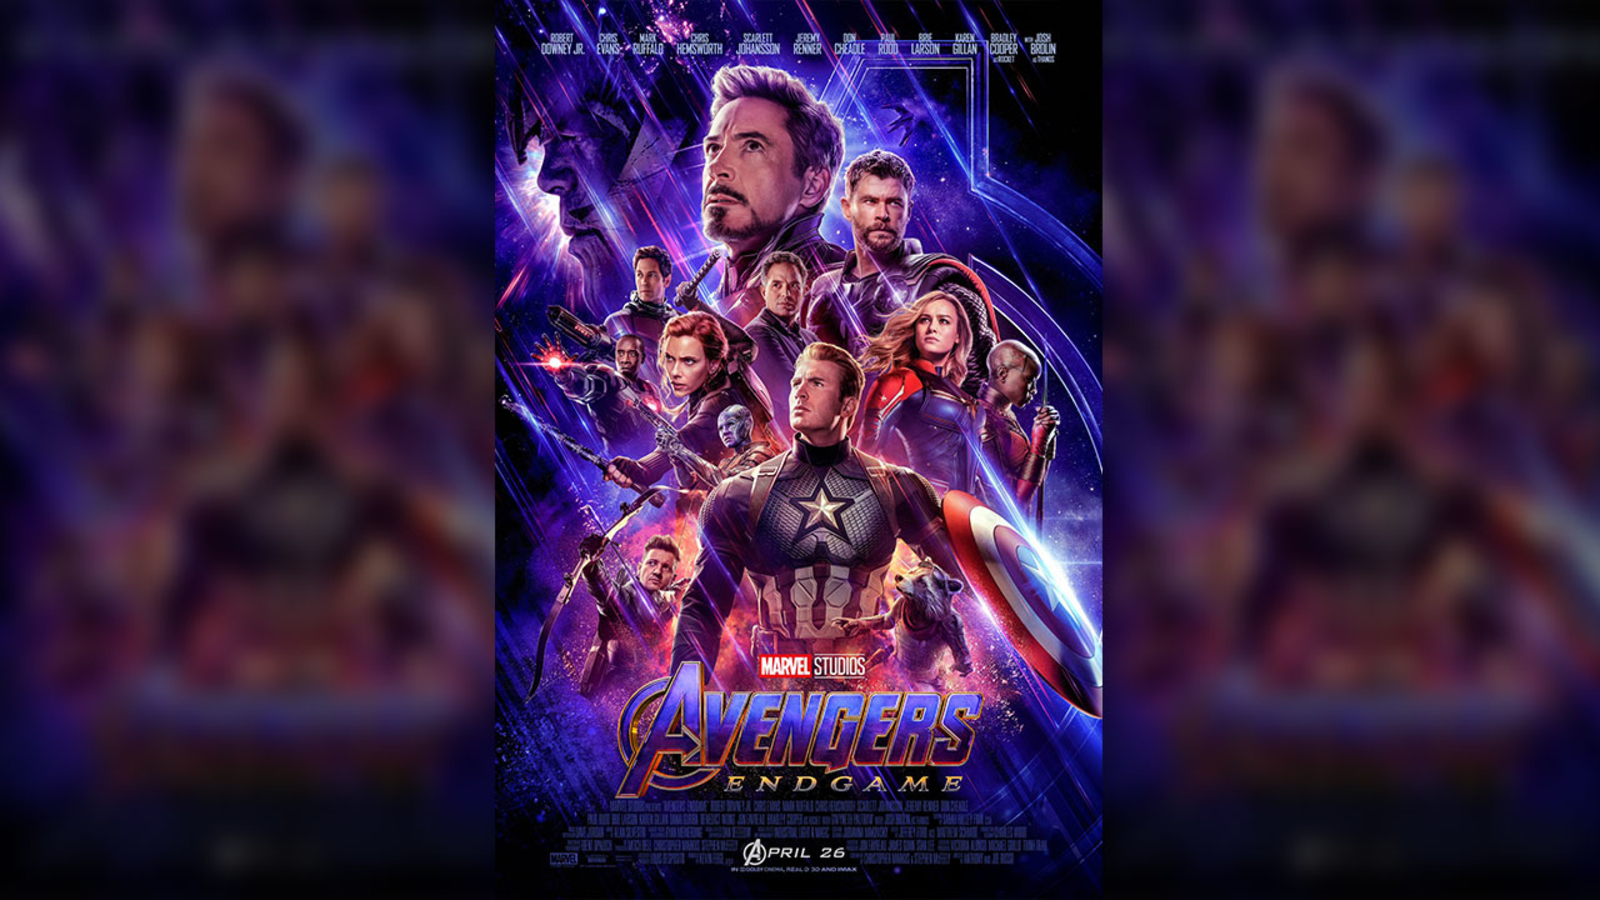 Avengers Endgame Gets New Trailer Poster Ahead Of Next Month S